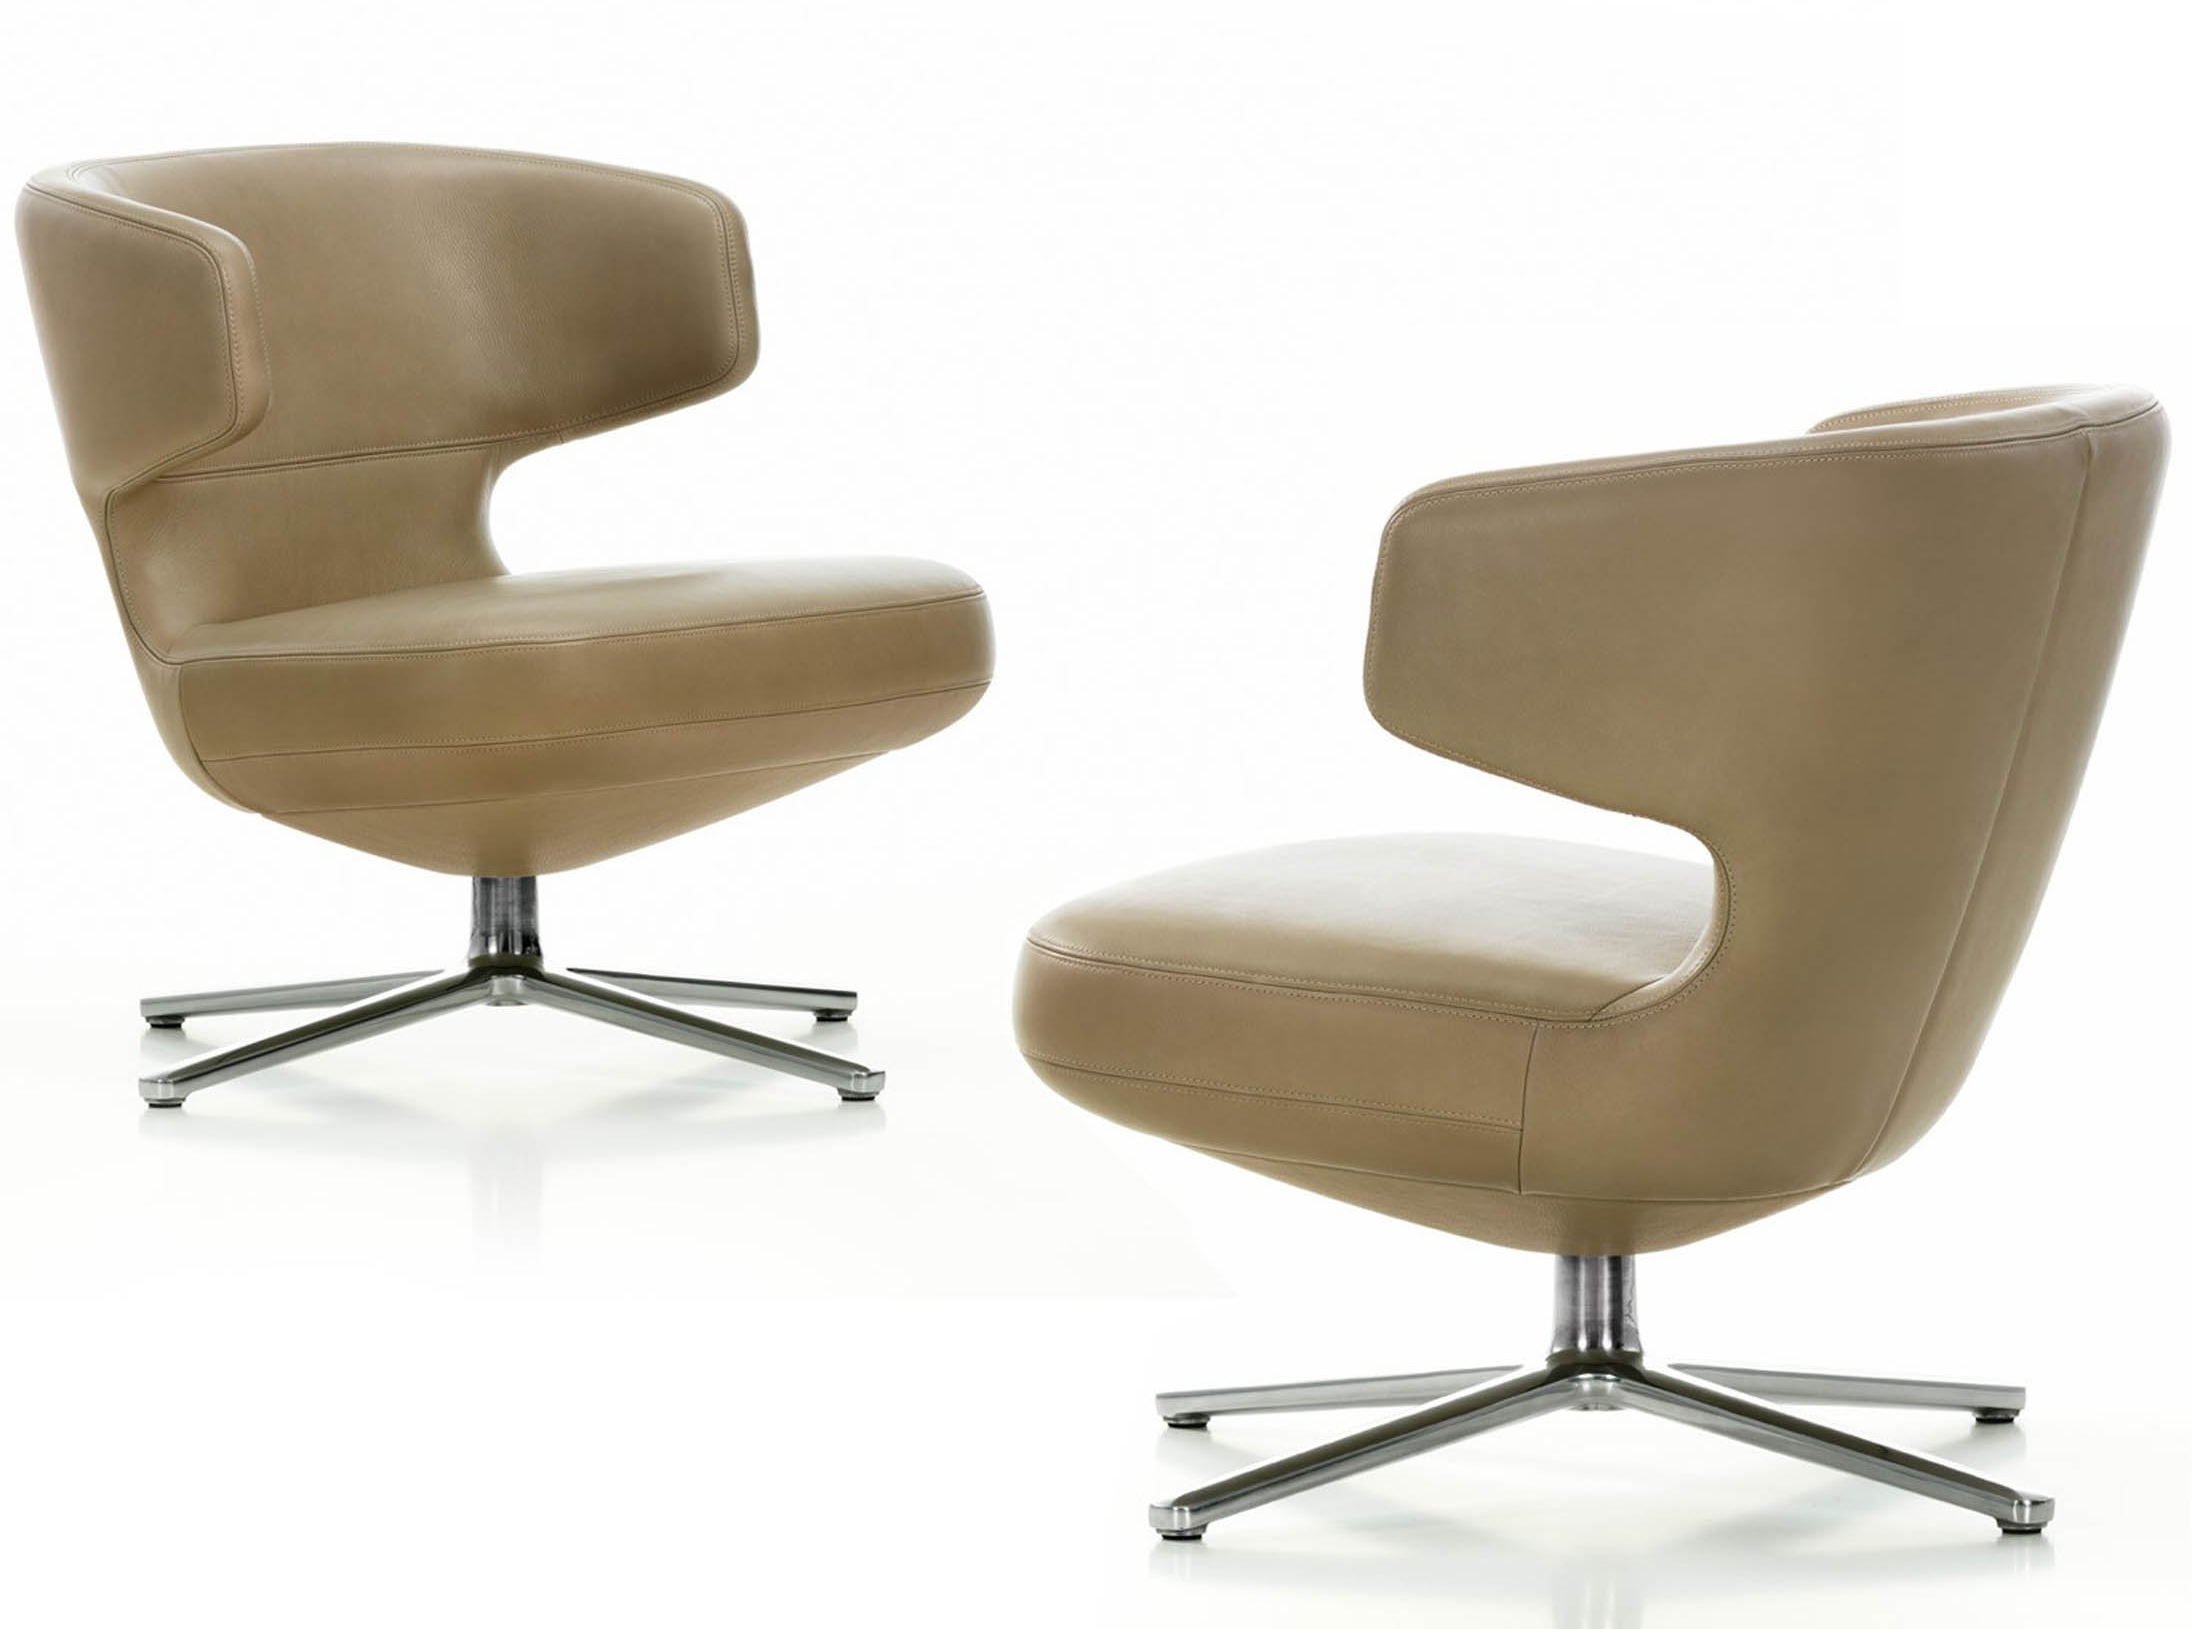 petit-repos-vitra-front-and-back-view.jpg